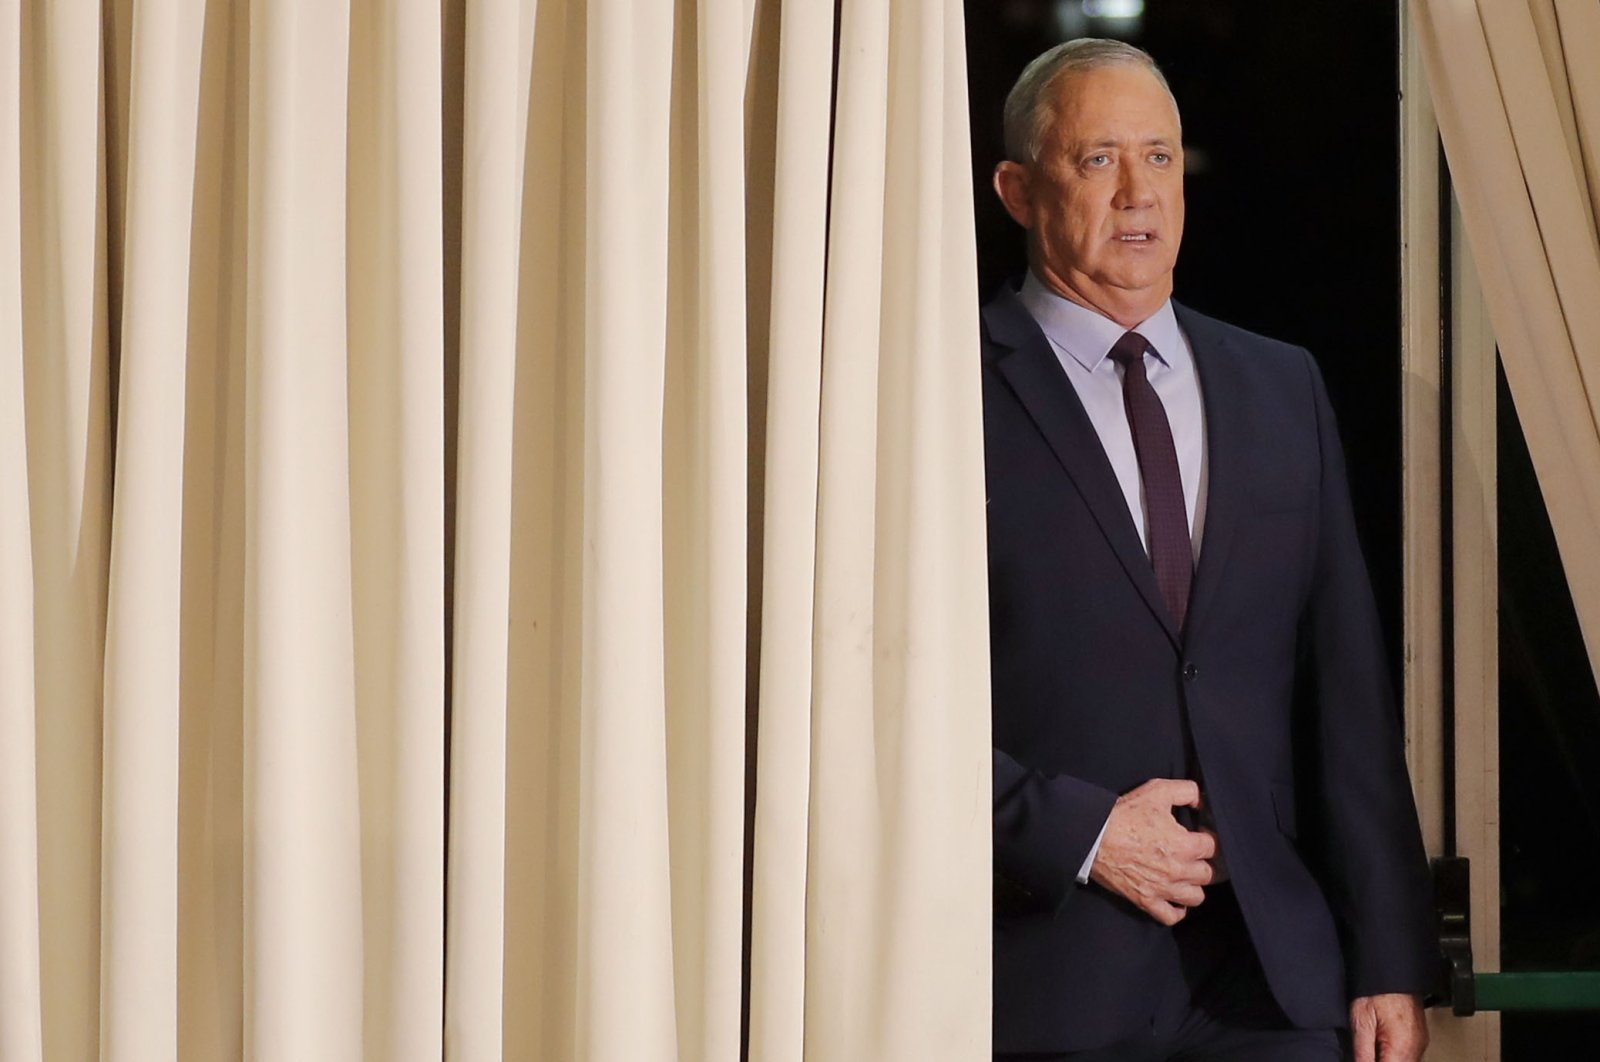 A file photo taken March 7, 2020, shows the leader of Israel's Blue and White electoral alliance Benny Gantz arriving to deliver a statement in the central Israeli city of Ramat Gan. (AFP Photo)